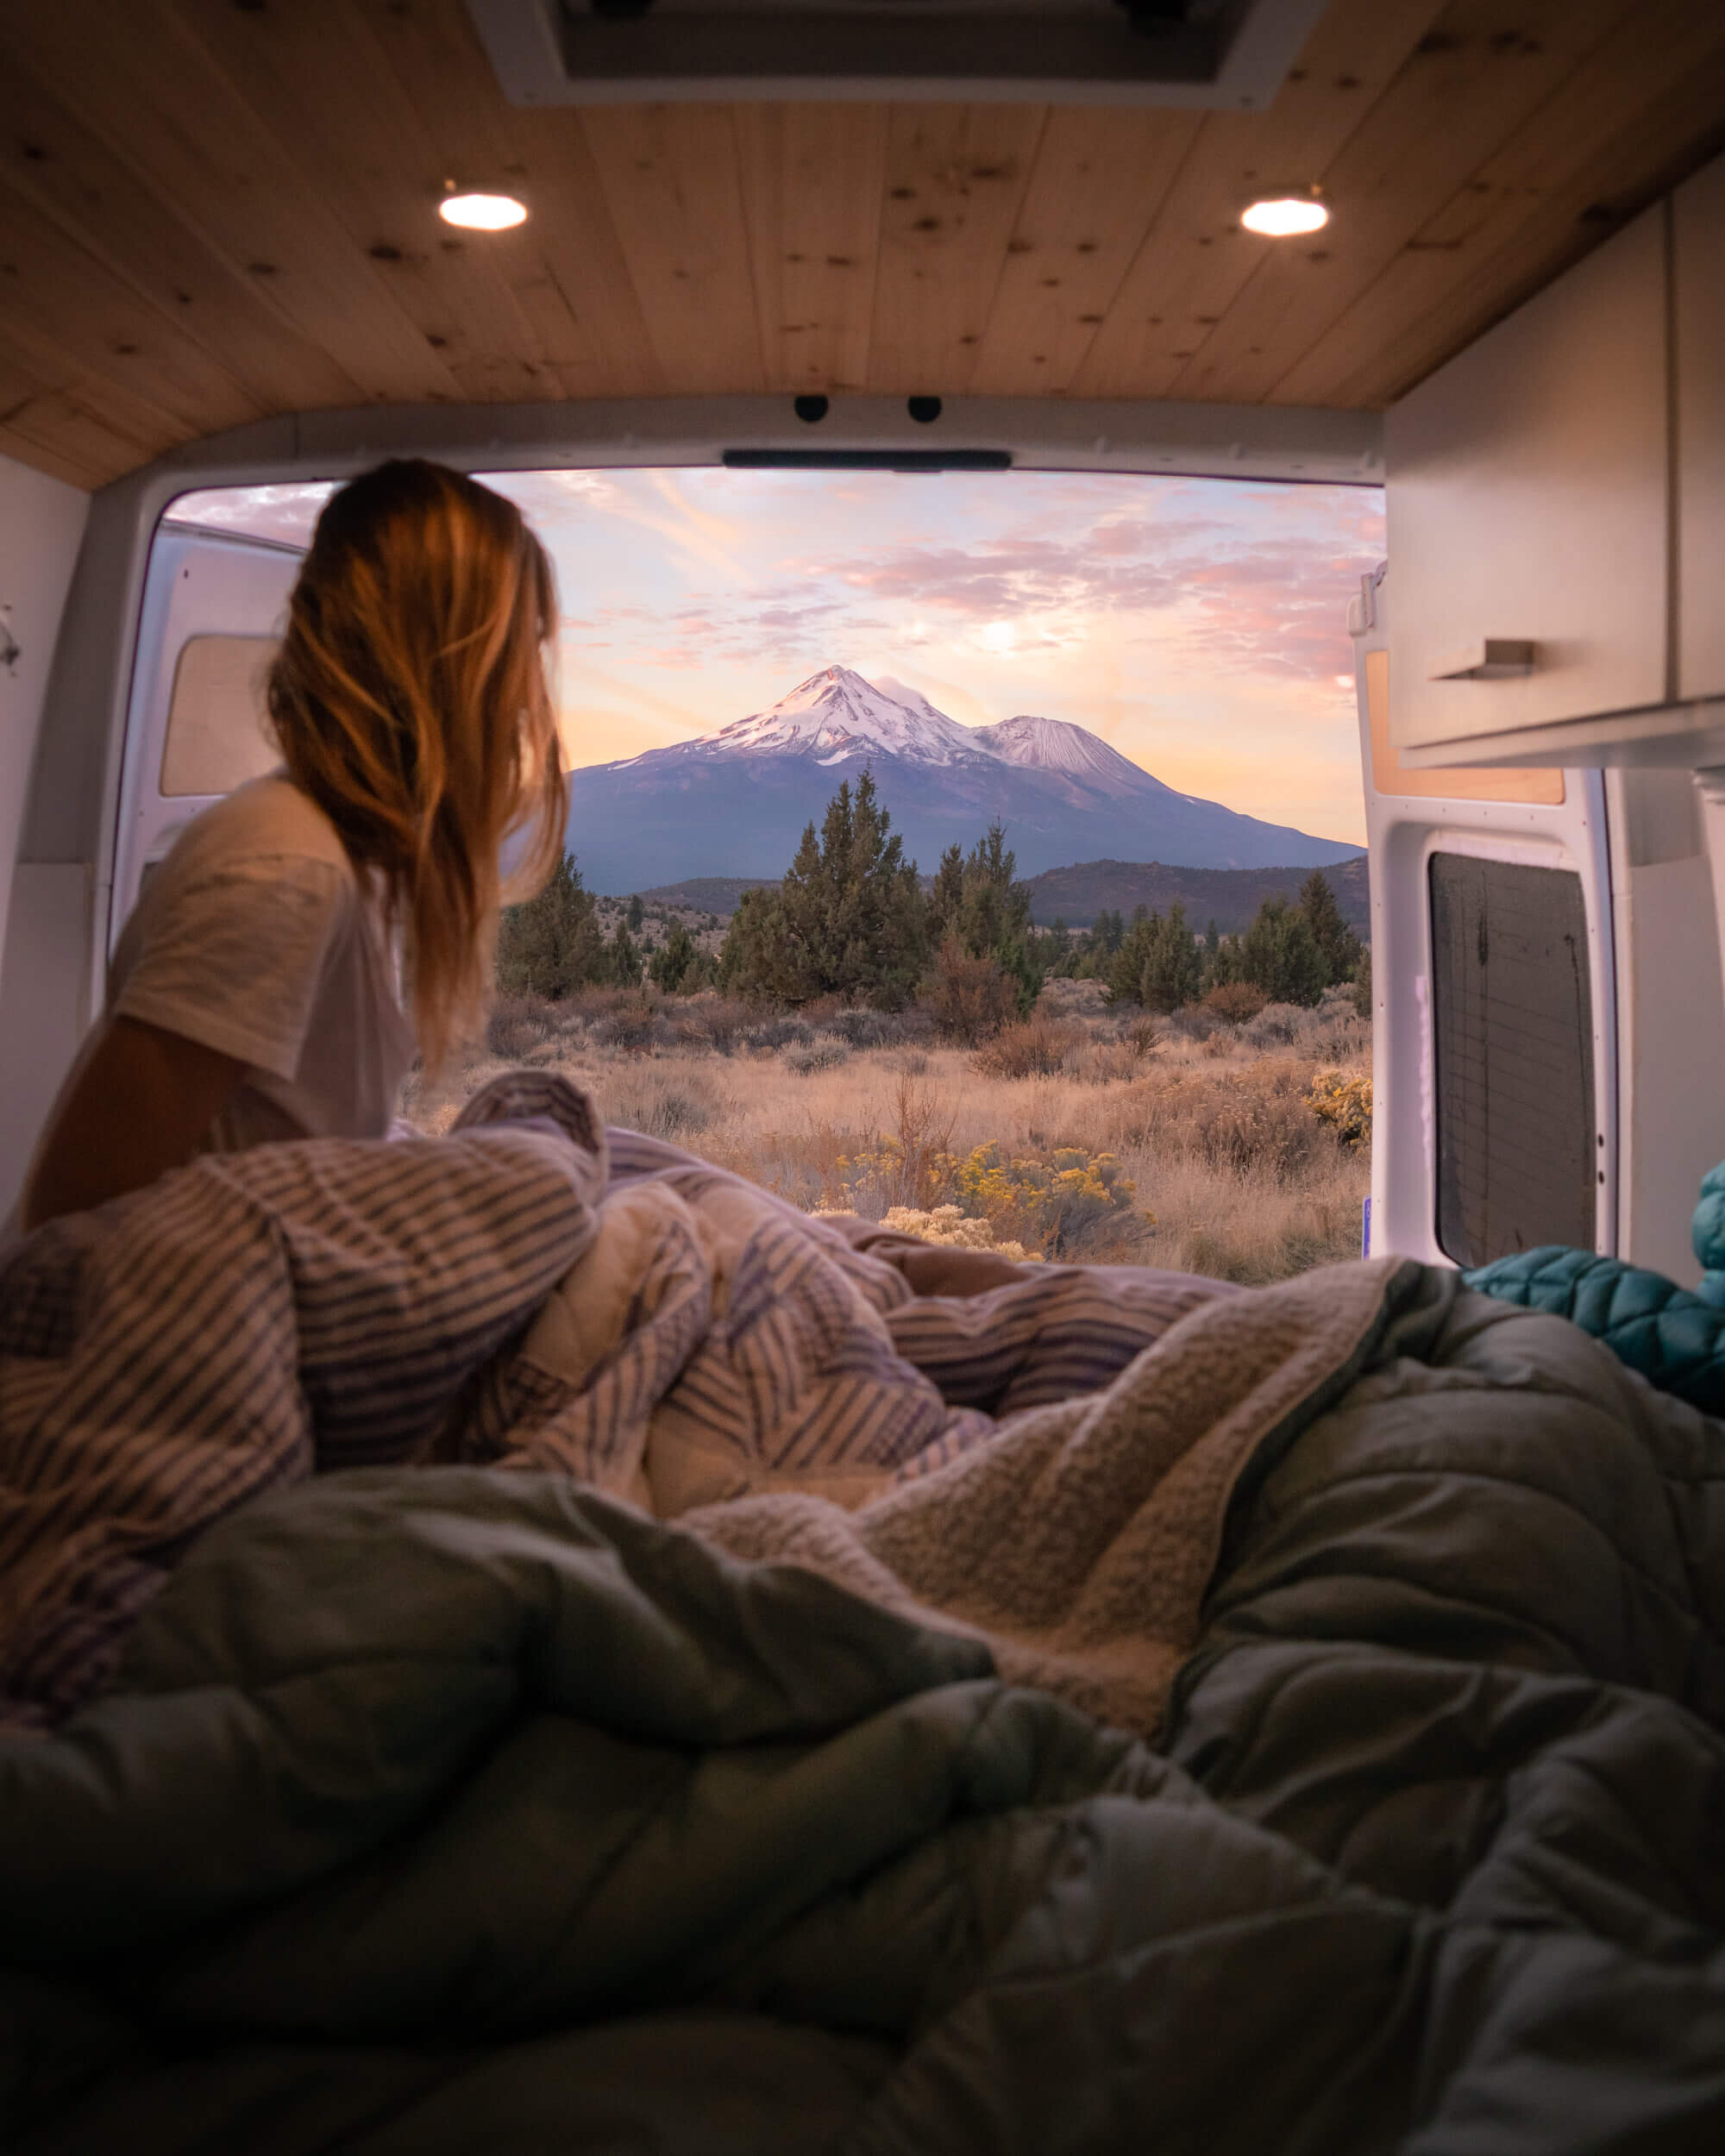 Taking in a spectacular sunrise over Mount Shasta from the back of our camper van.